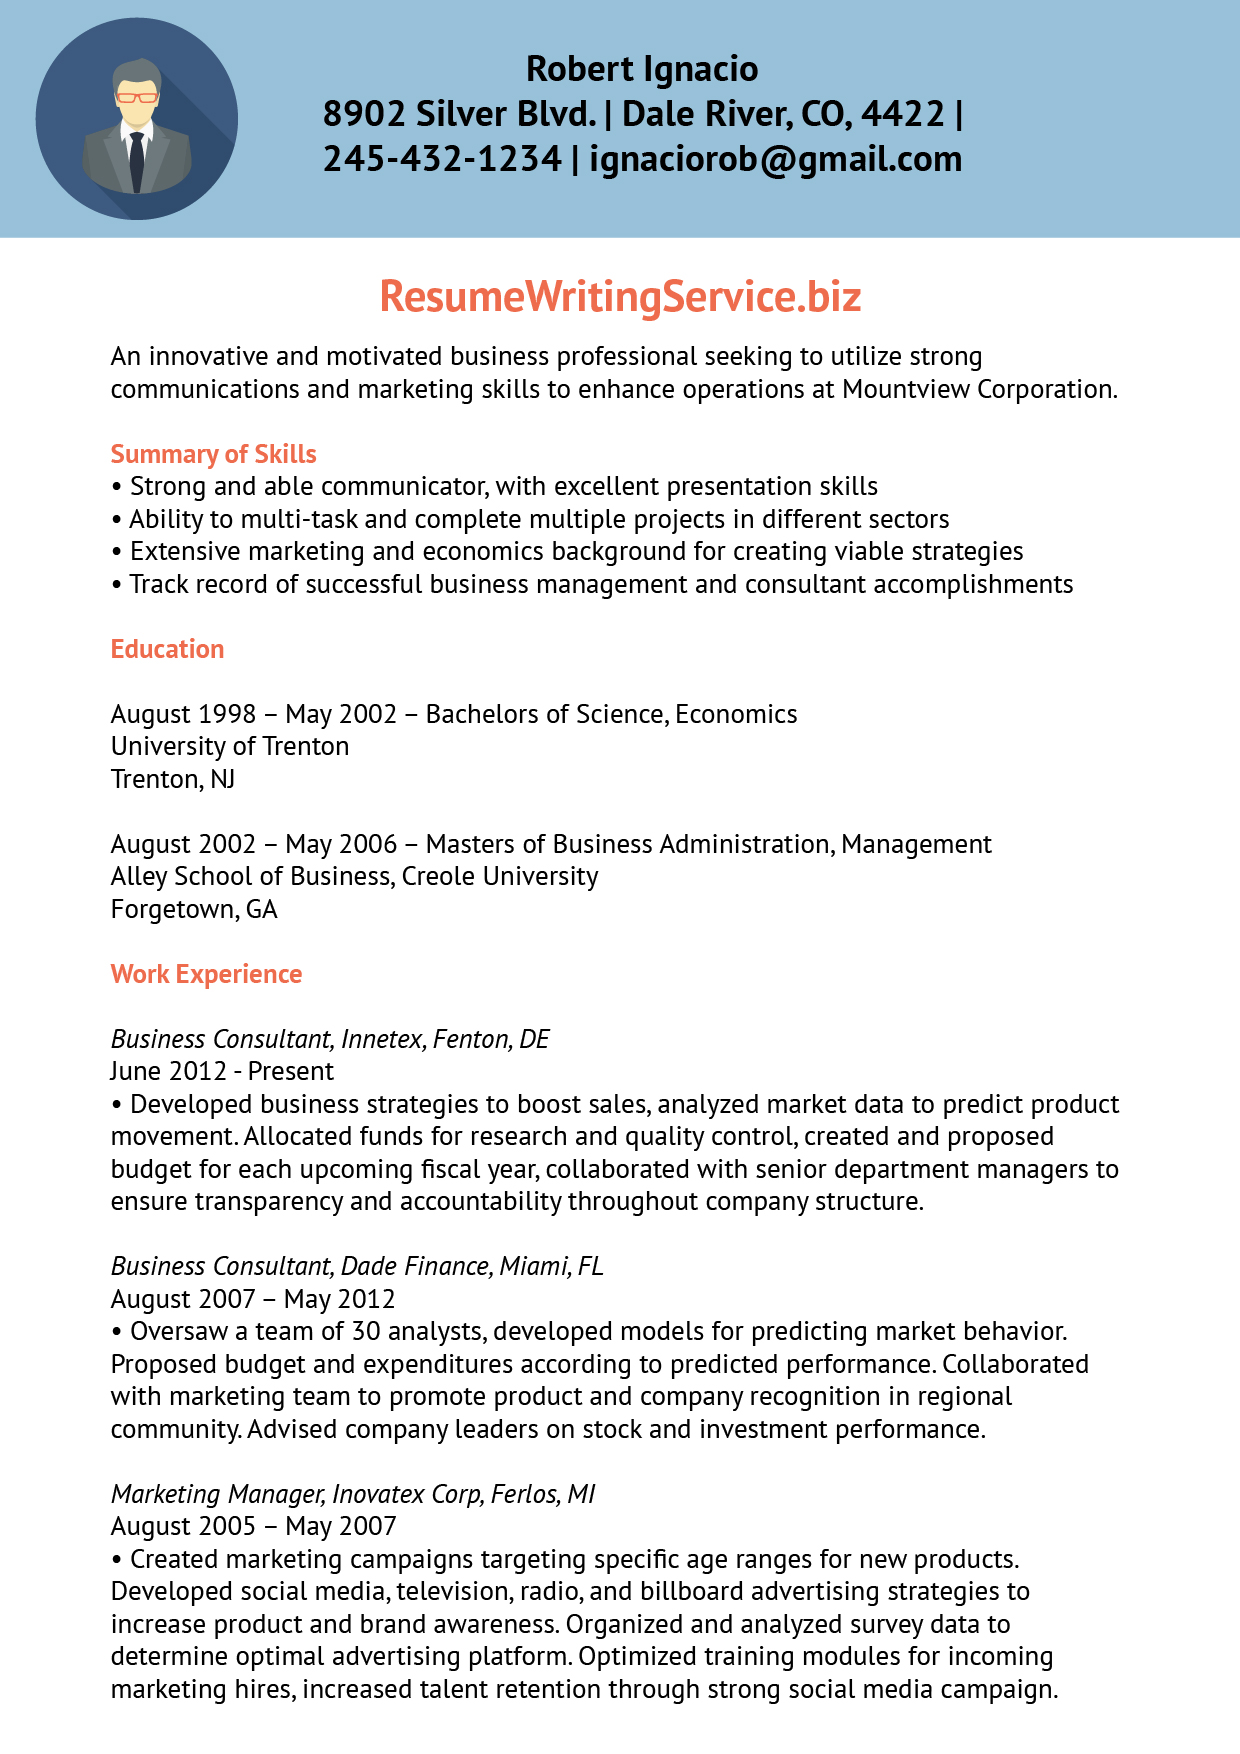 work experience resume for business management